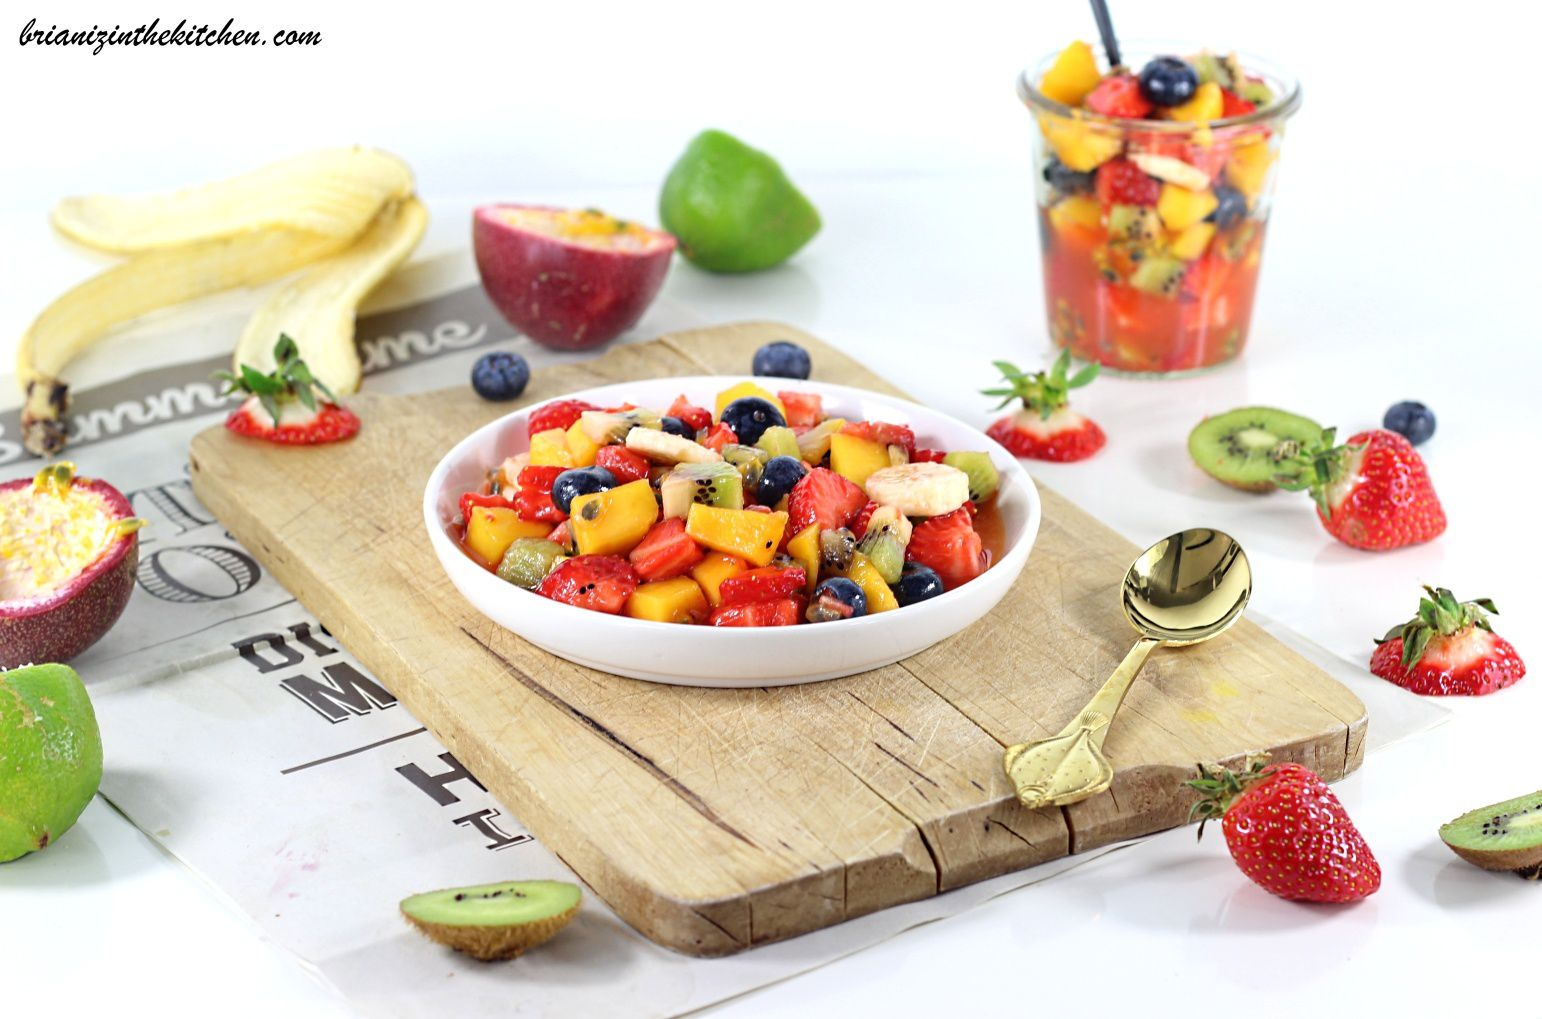 Salade de Fruits de Saison & Fruits Exotiques